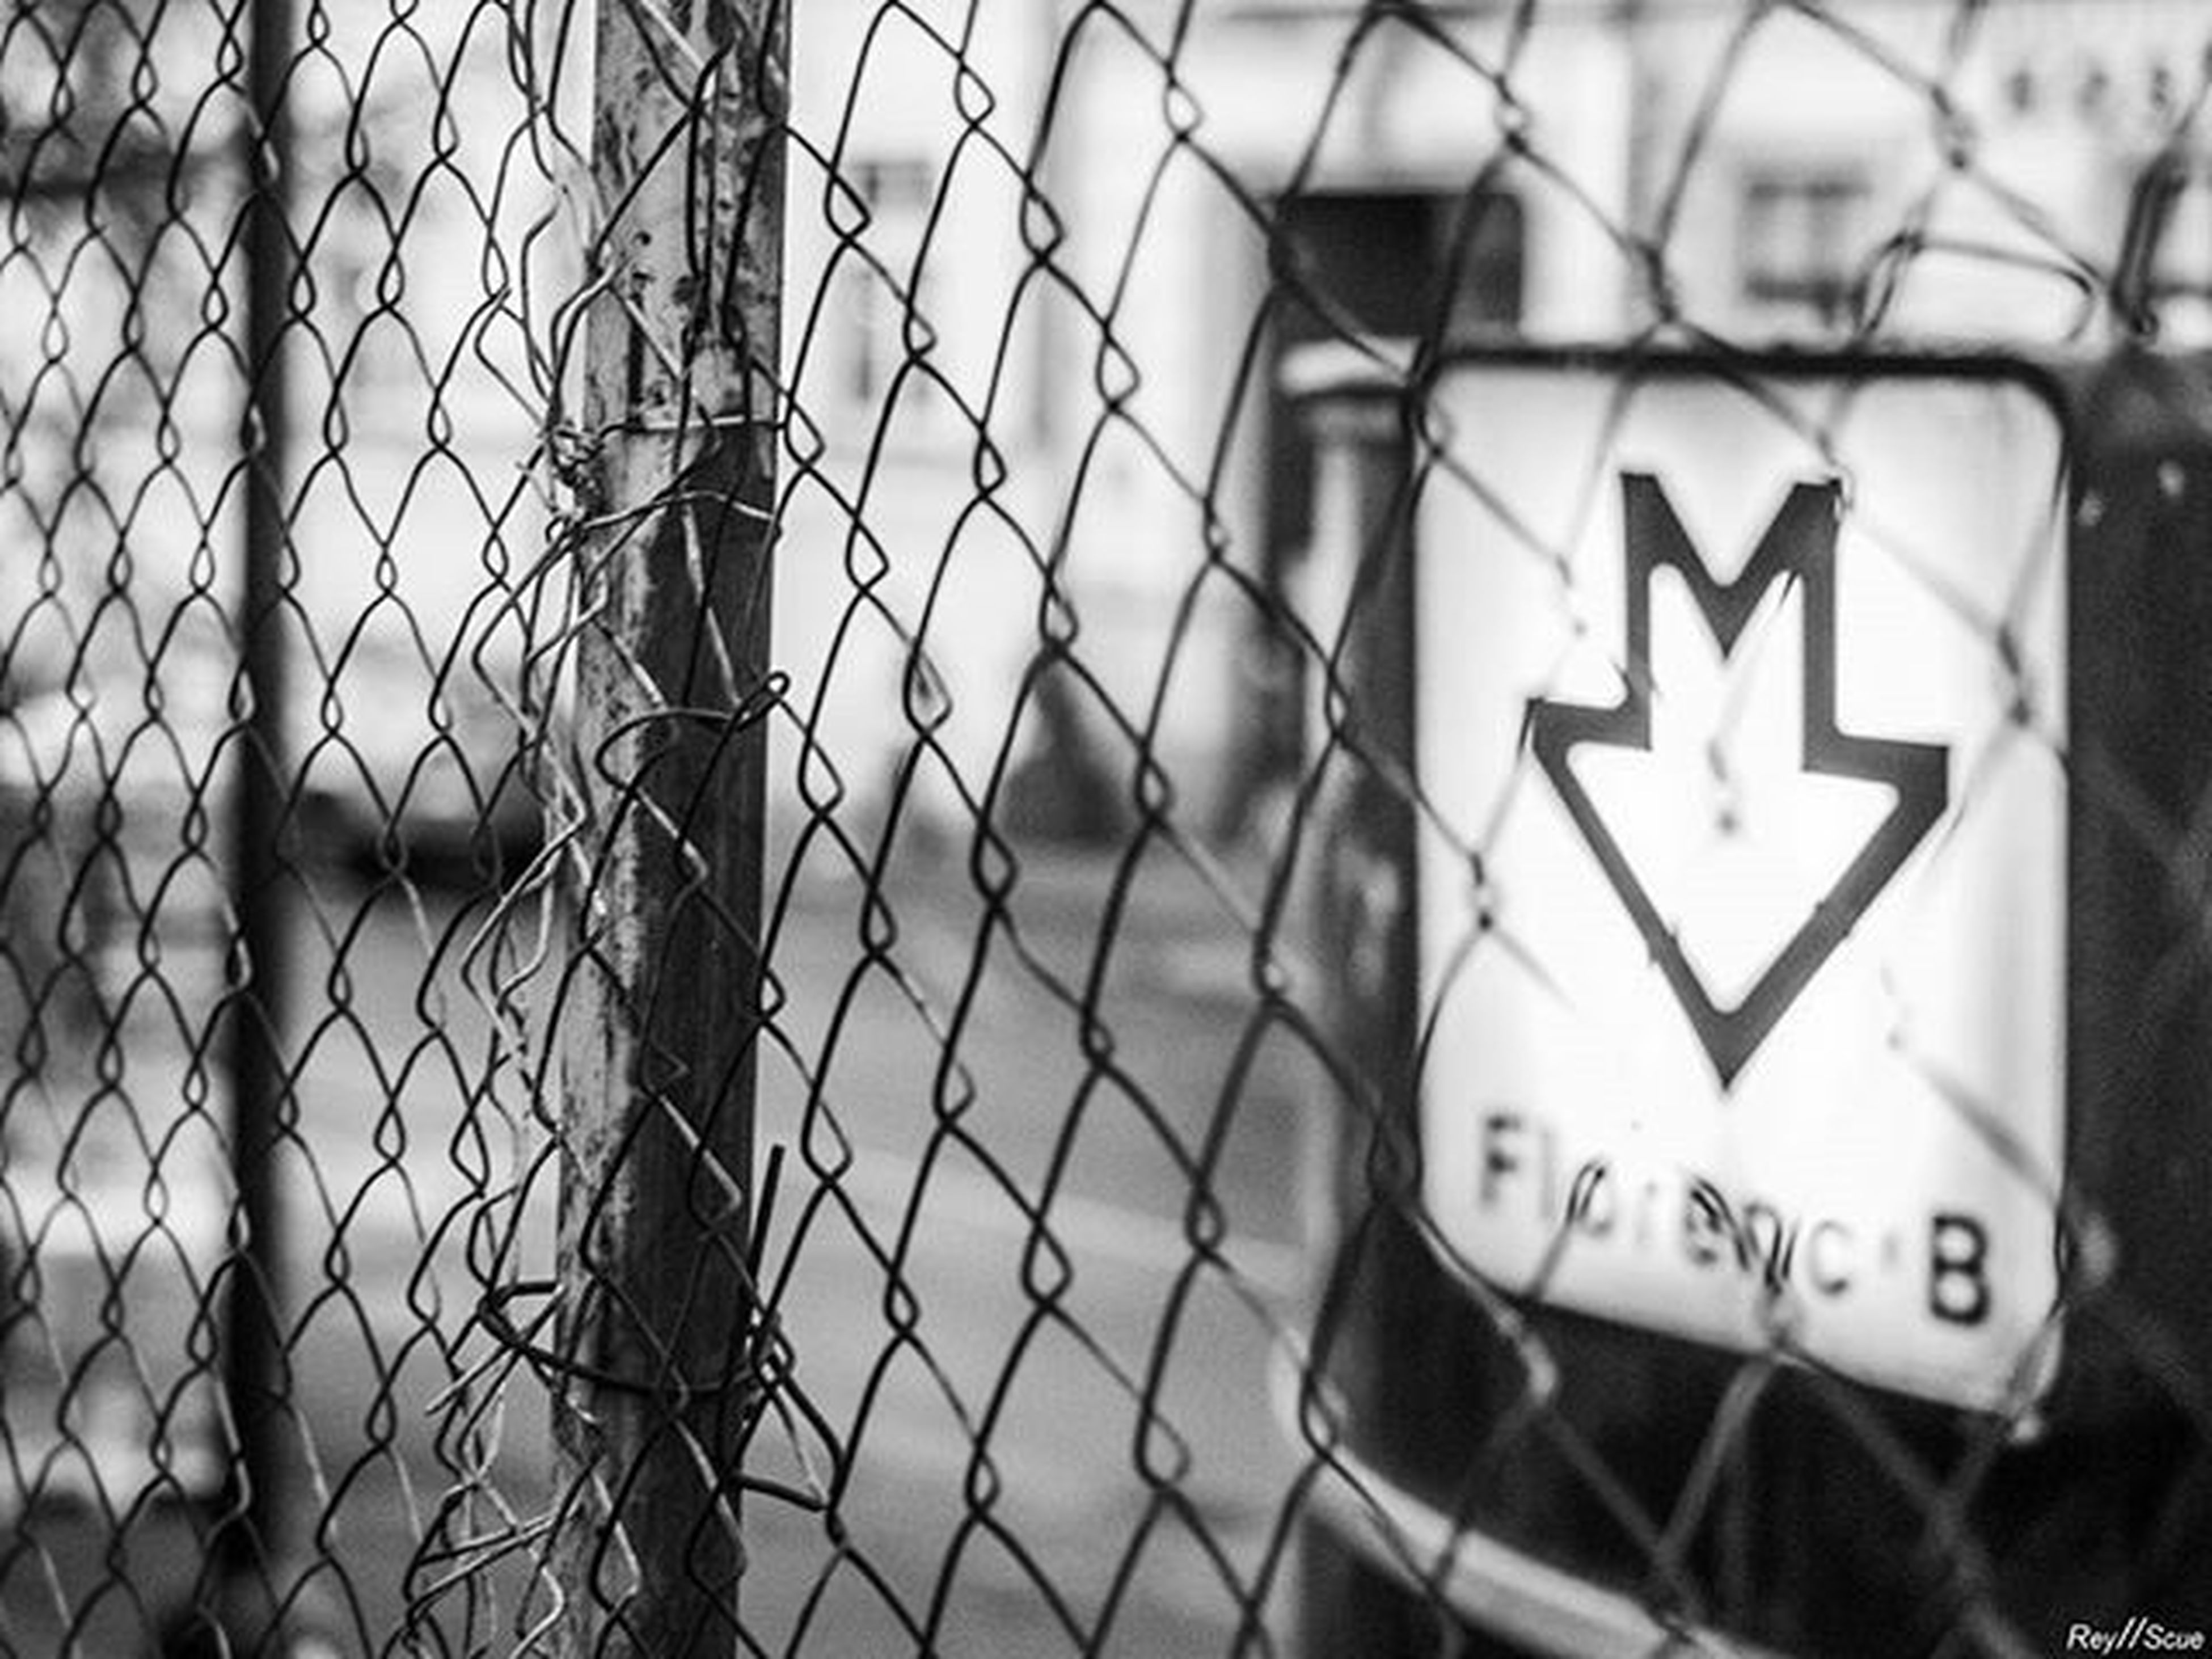 text, communication, western script, focus on foreground, close-up, safety, protection, security, sign, day, metal, guidance, building exterior, no people, built structure, information sign, outdoors, architecture, fence, chainlink fence